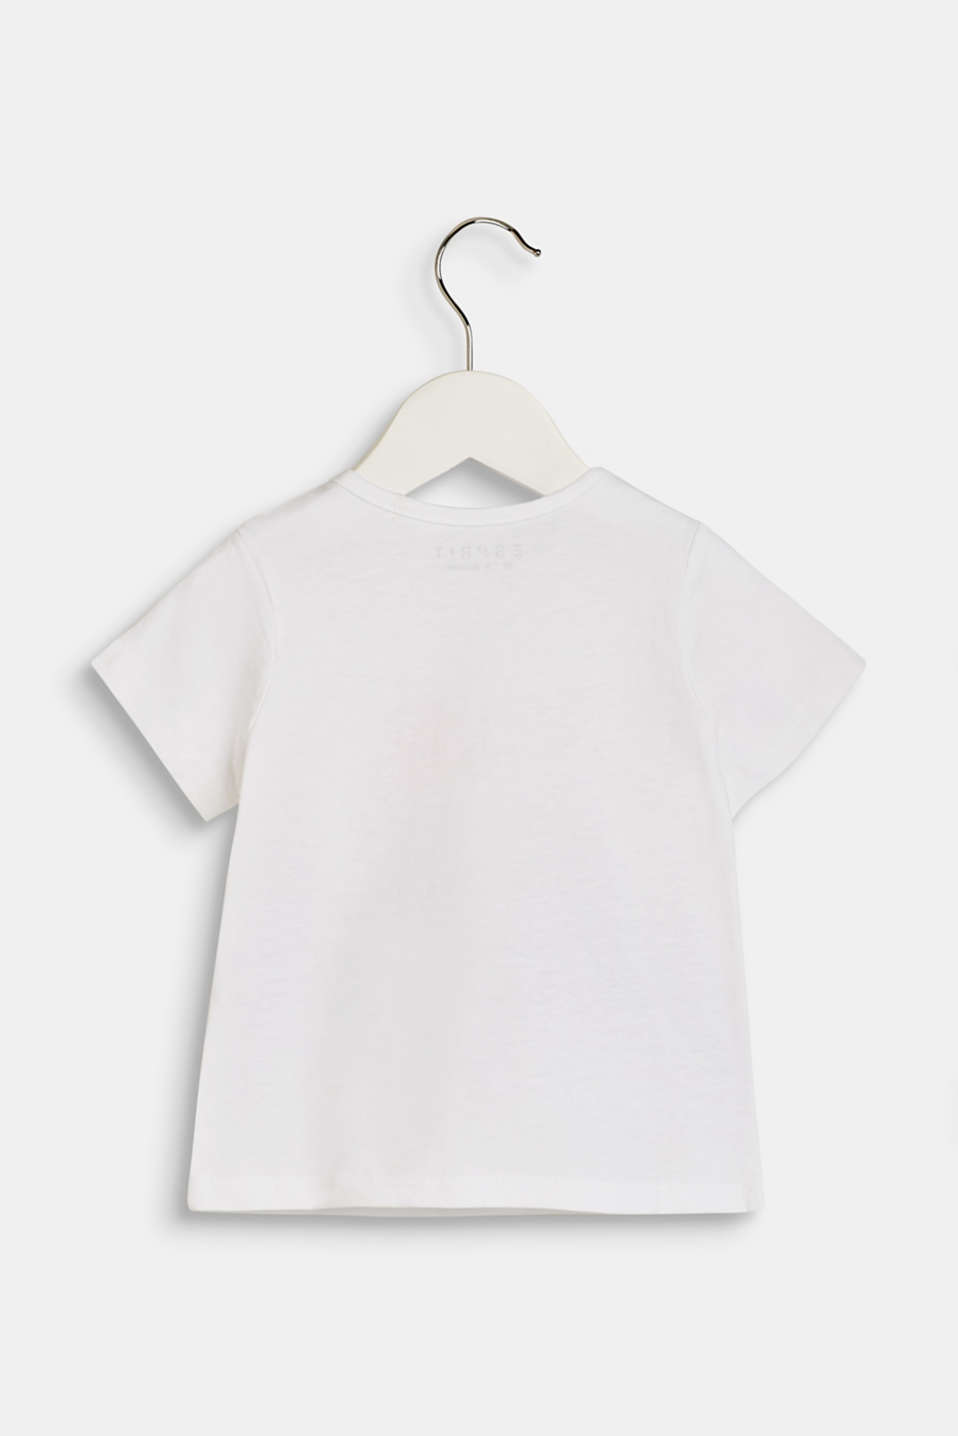 T-shirt with a zebra print, 100% cotton, LCWHITE, detail image number 1